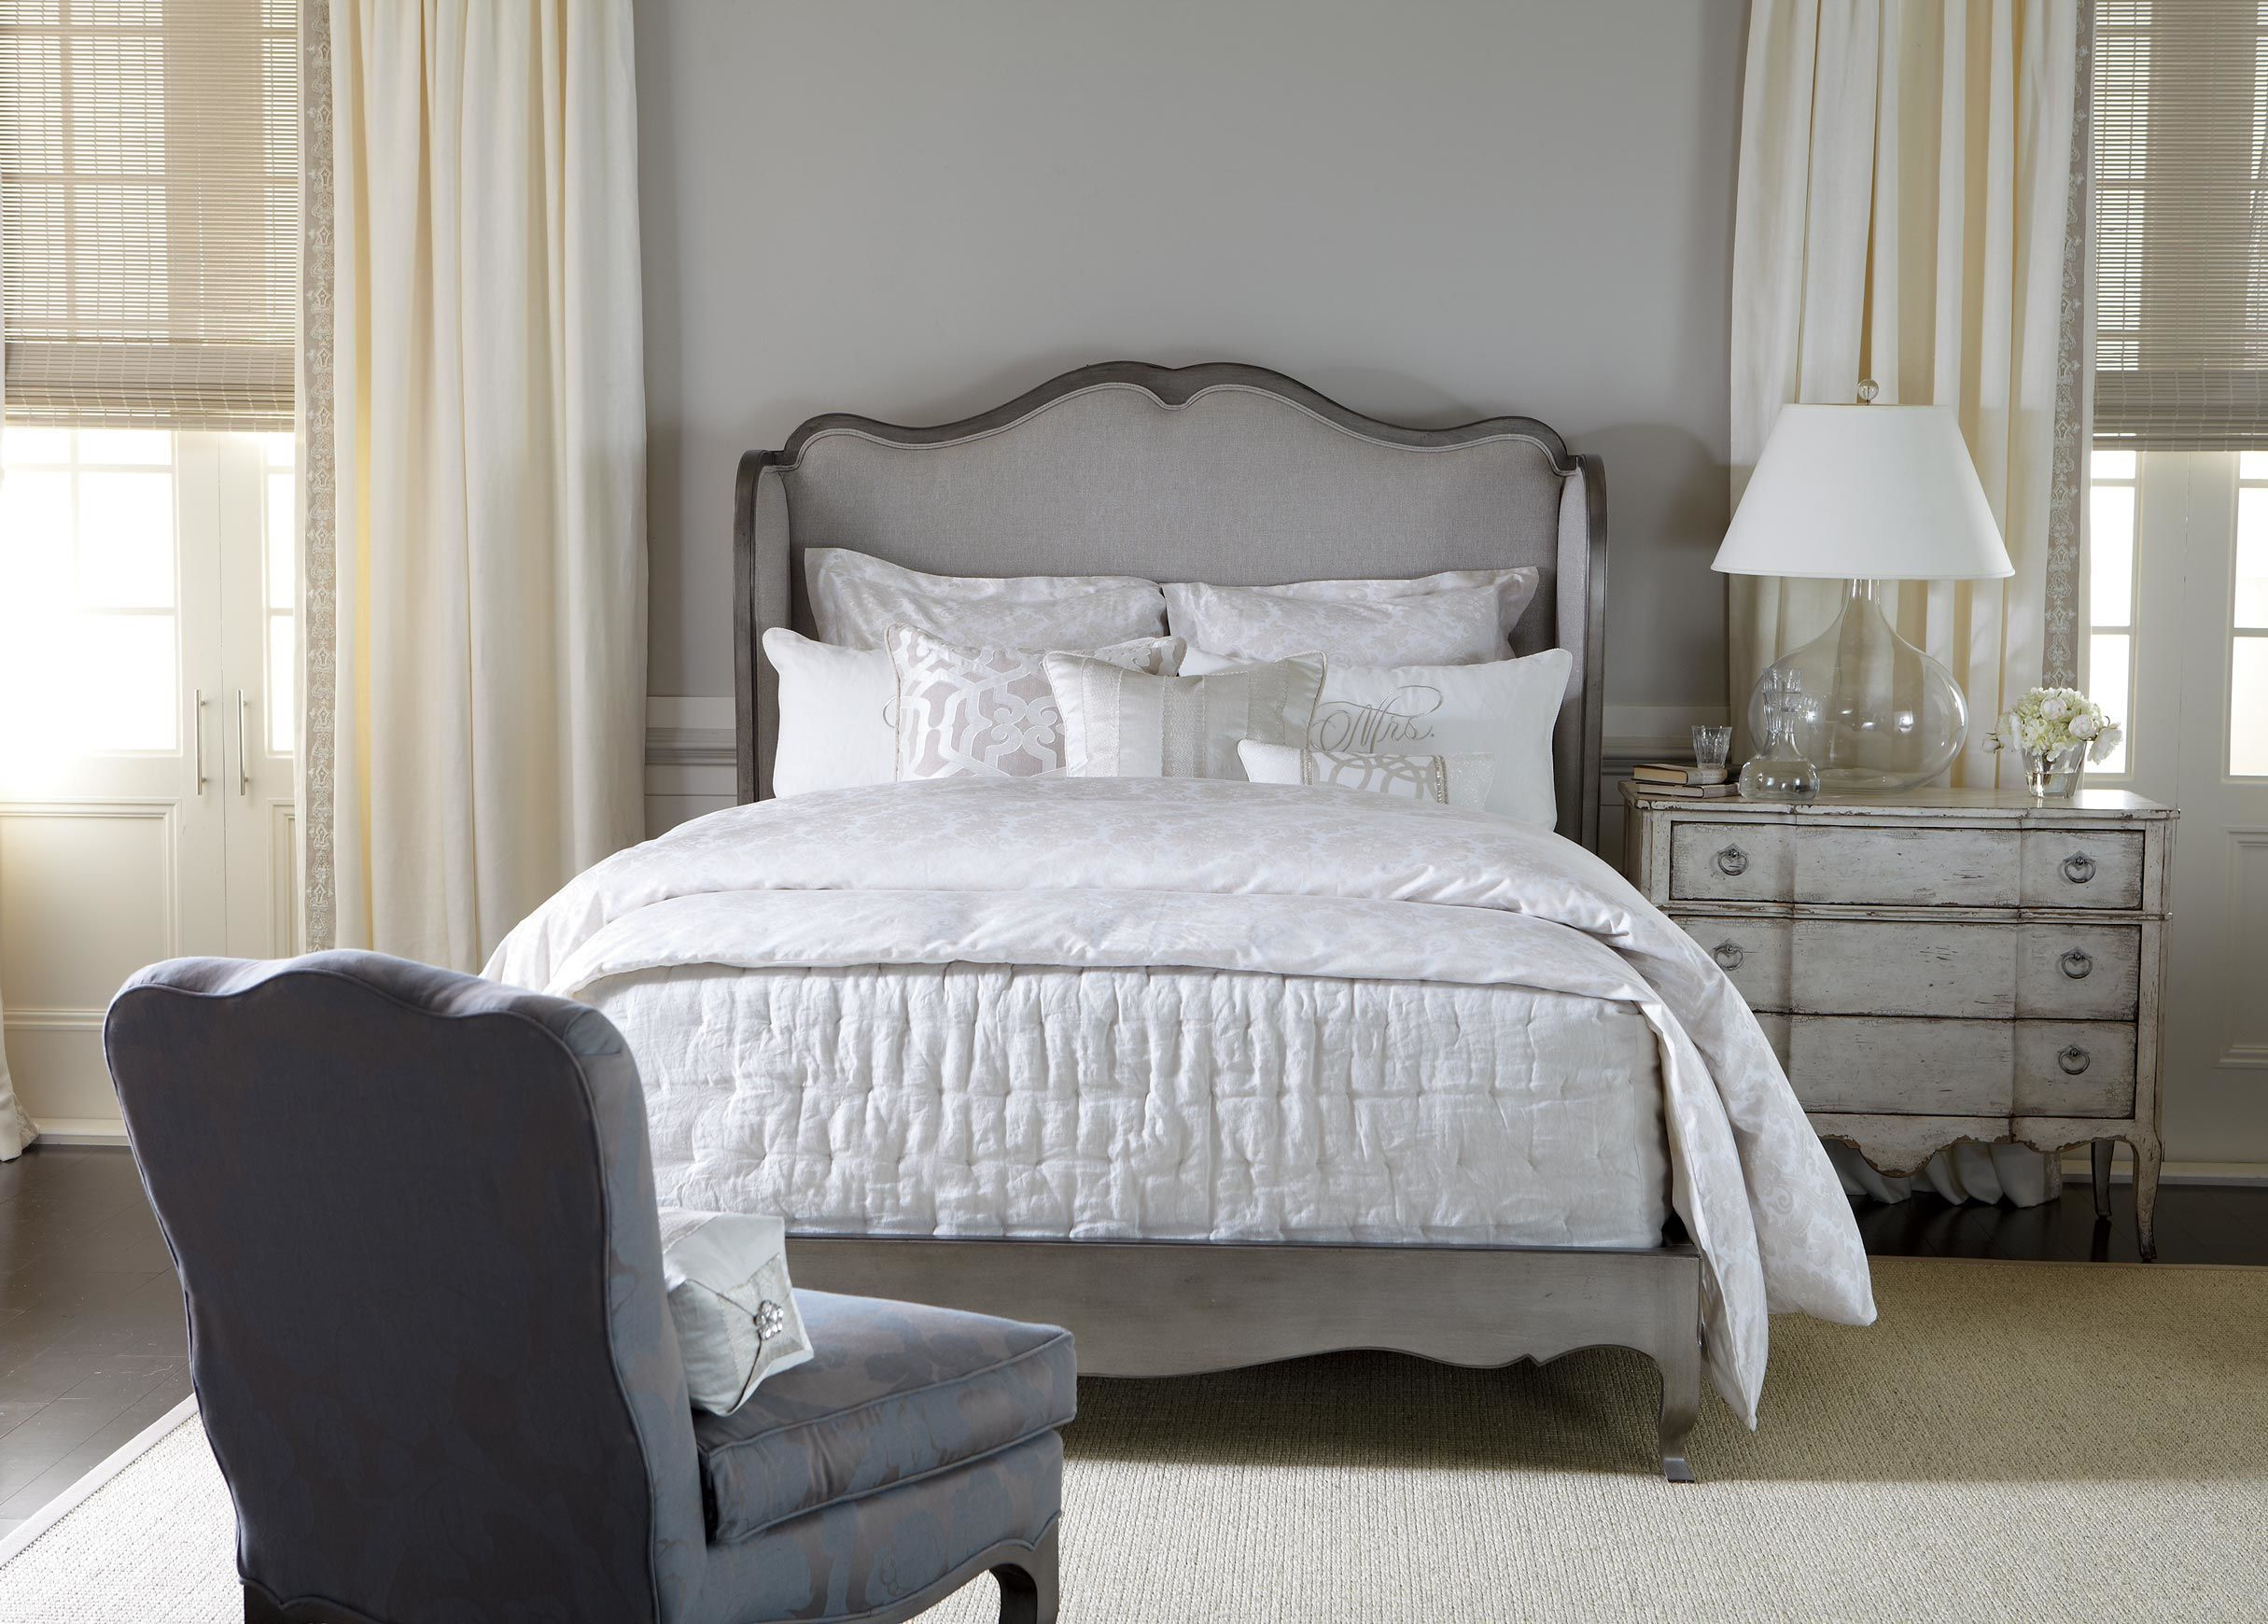 ethan allen bedrooms. Beau Bed with Low Footboard  Beds Ethan Allen Home Sweet